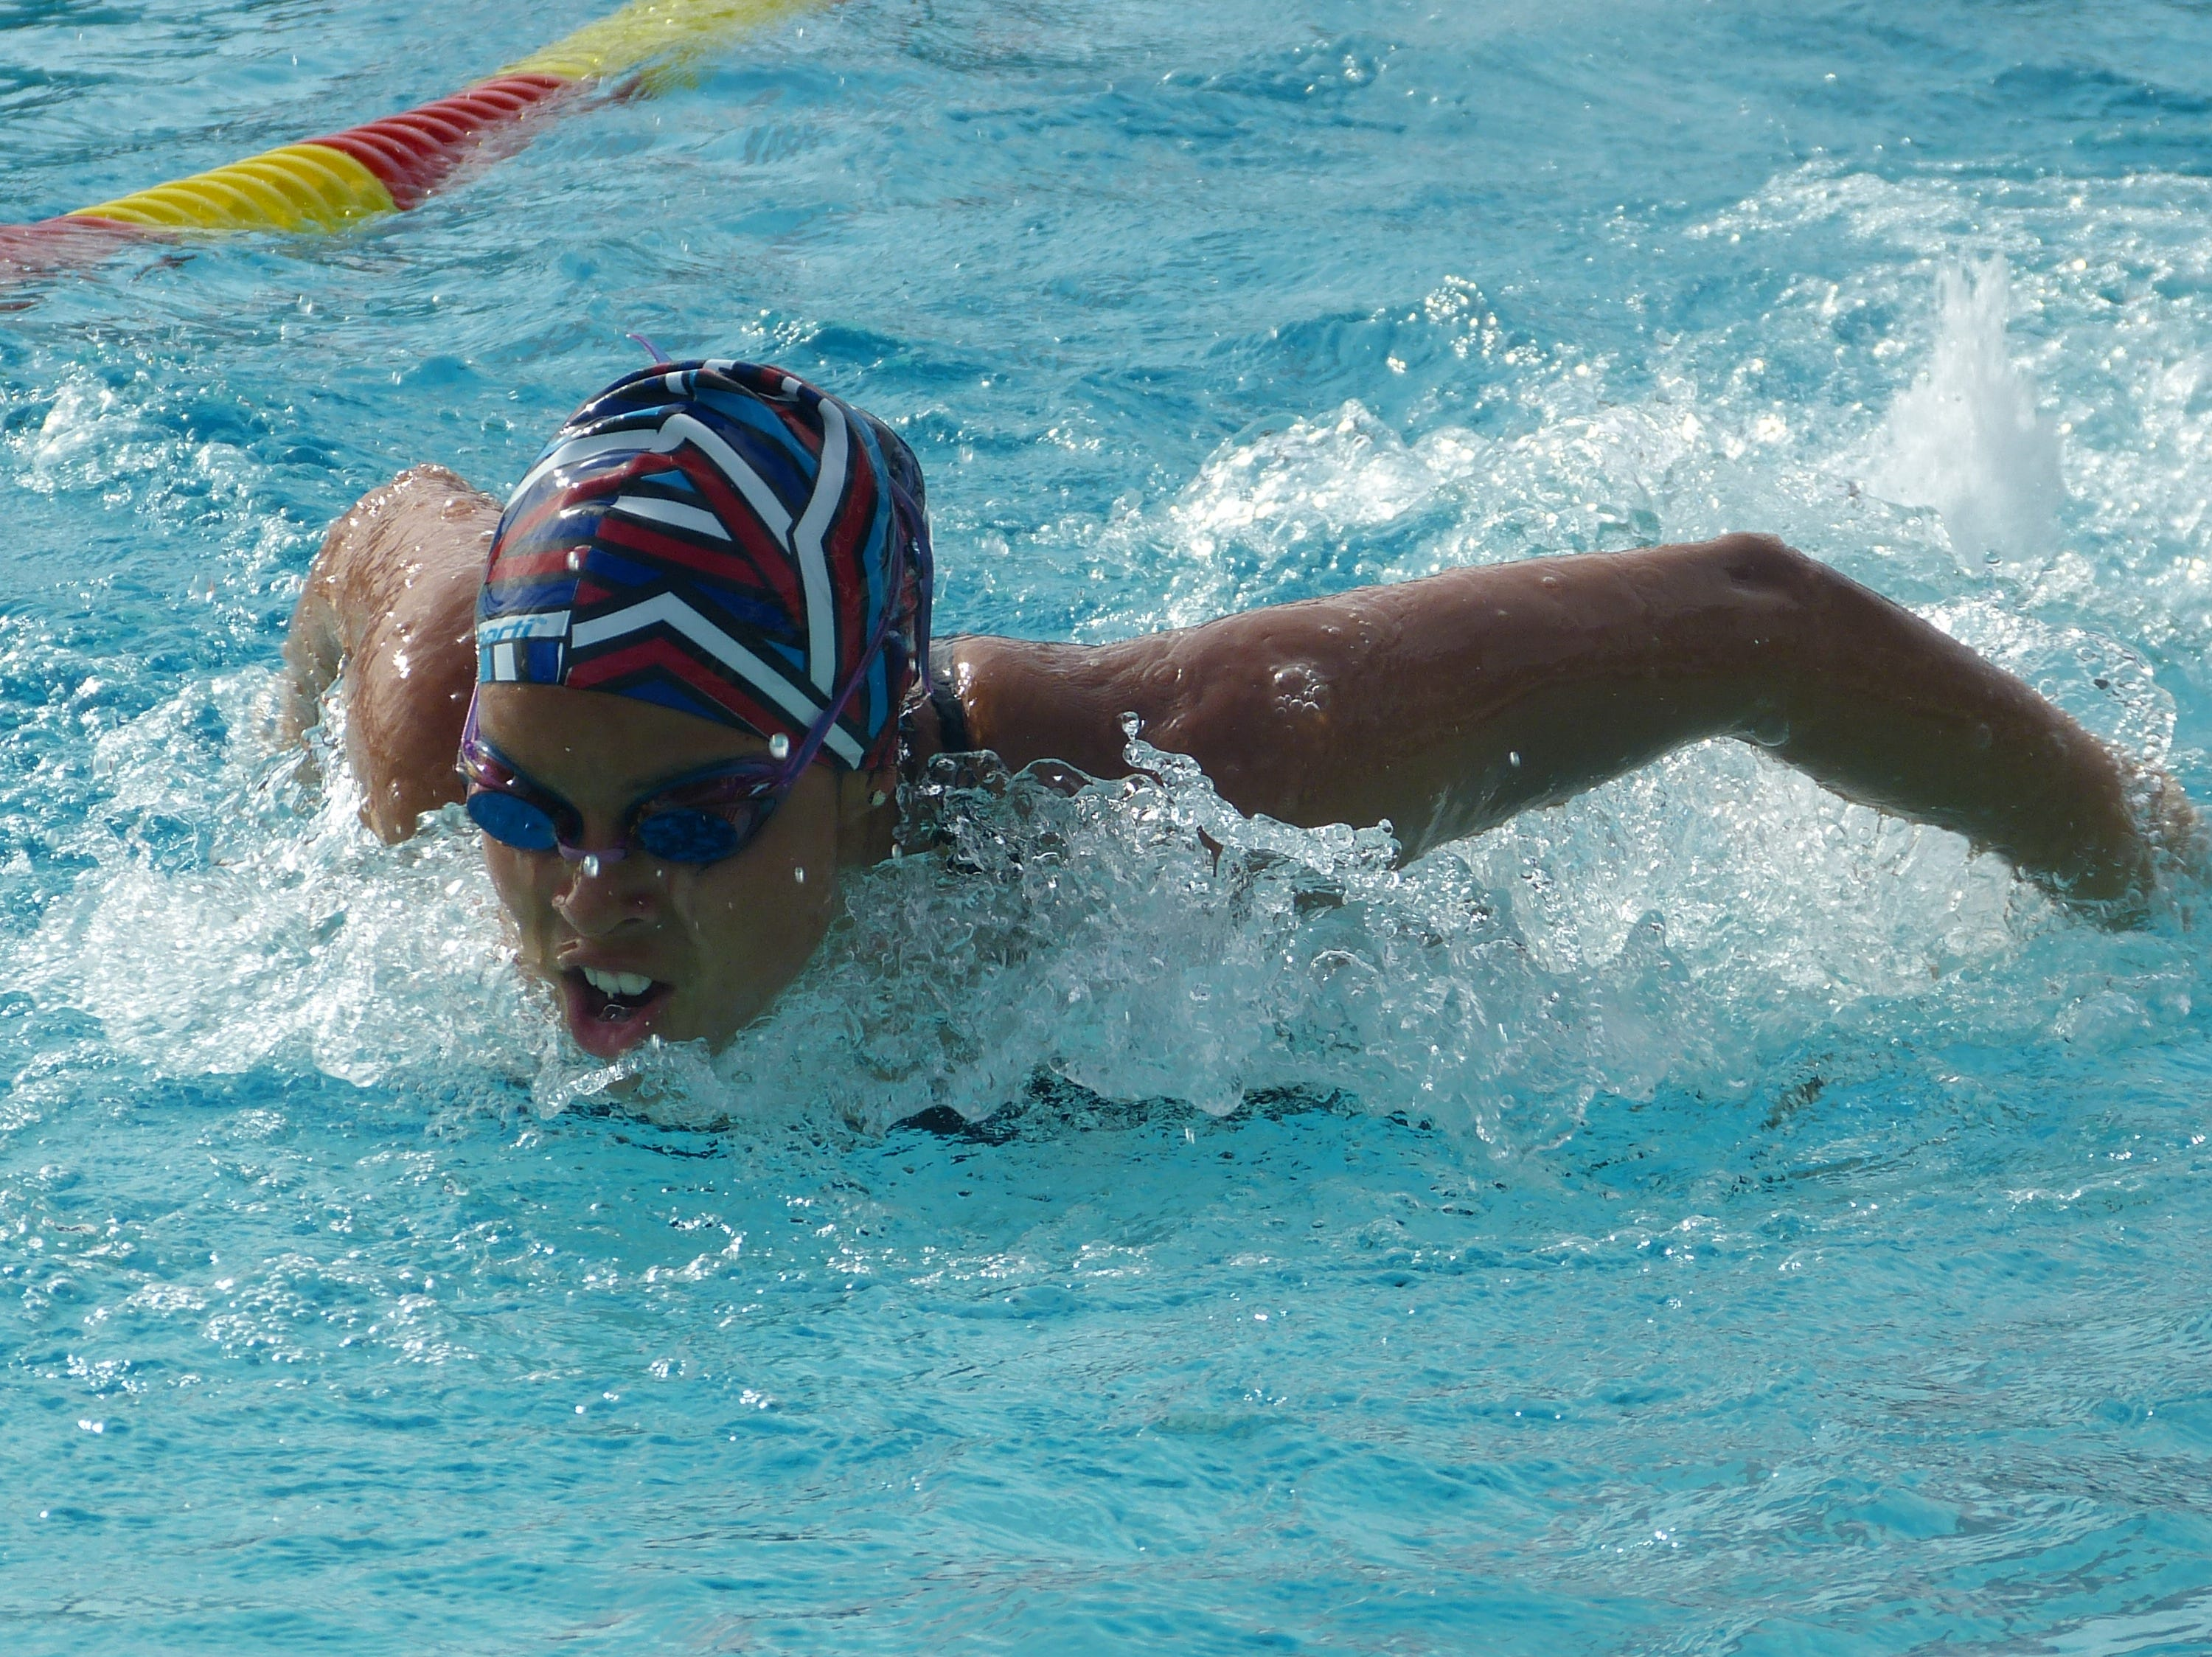 Celina Allen of Durham competes in the 100-yard butterfly Wednesday at the NSCIF trials for Division 2 schools at West Valley High School on Oct. 24, 2018.